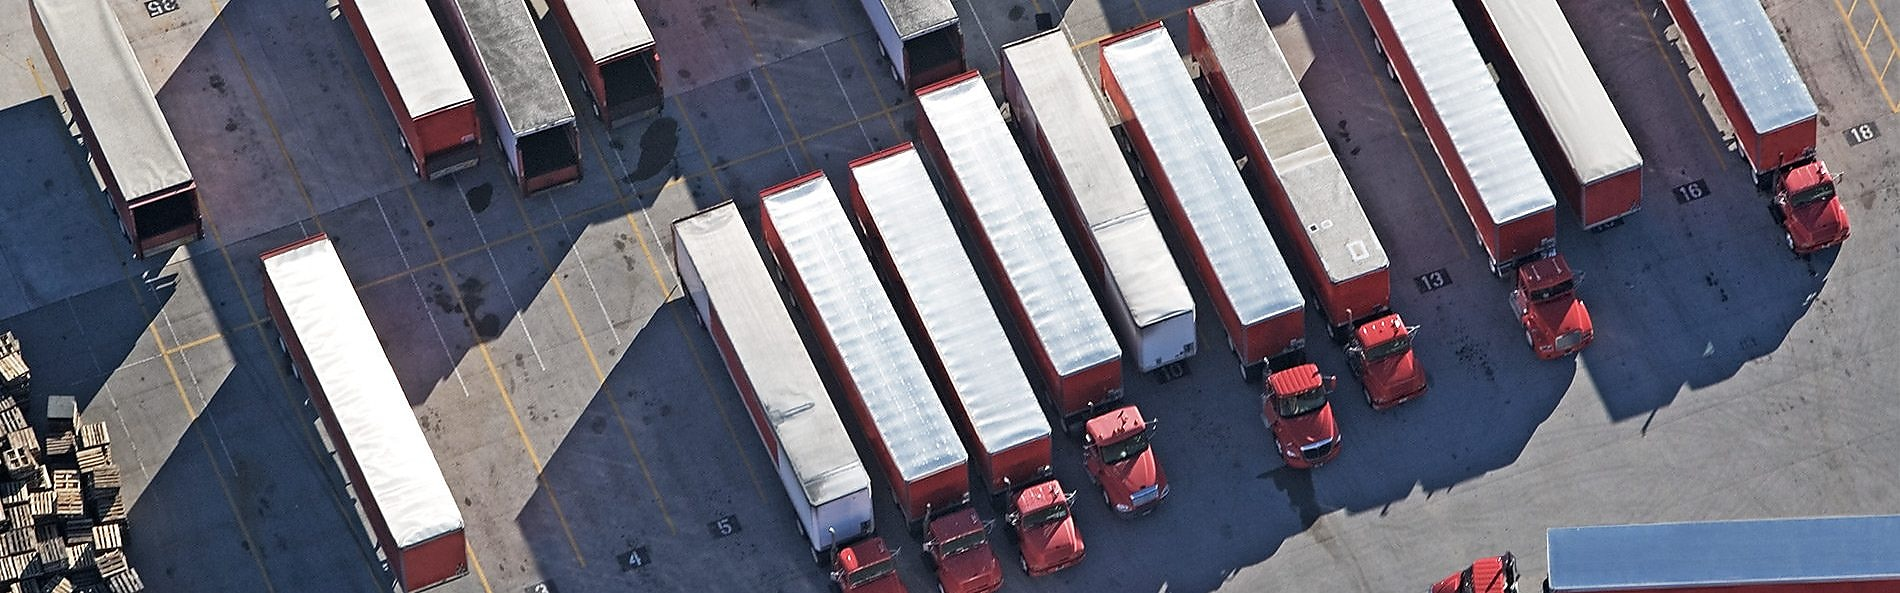 A series of red lorries parked in a row